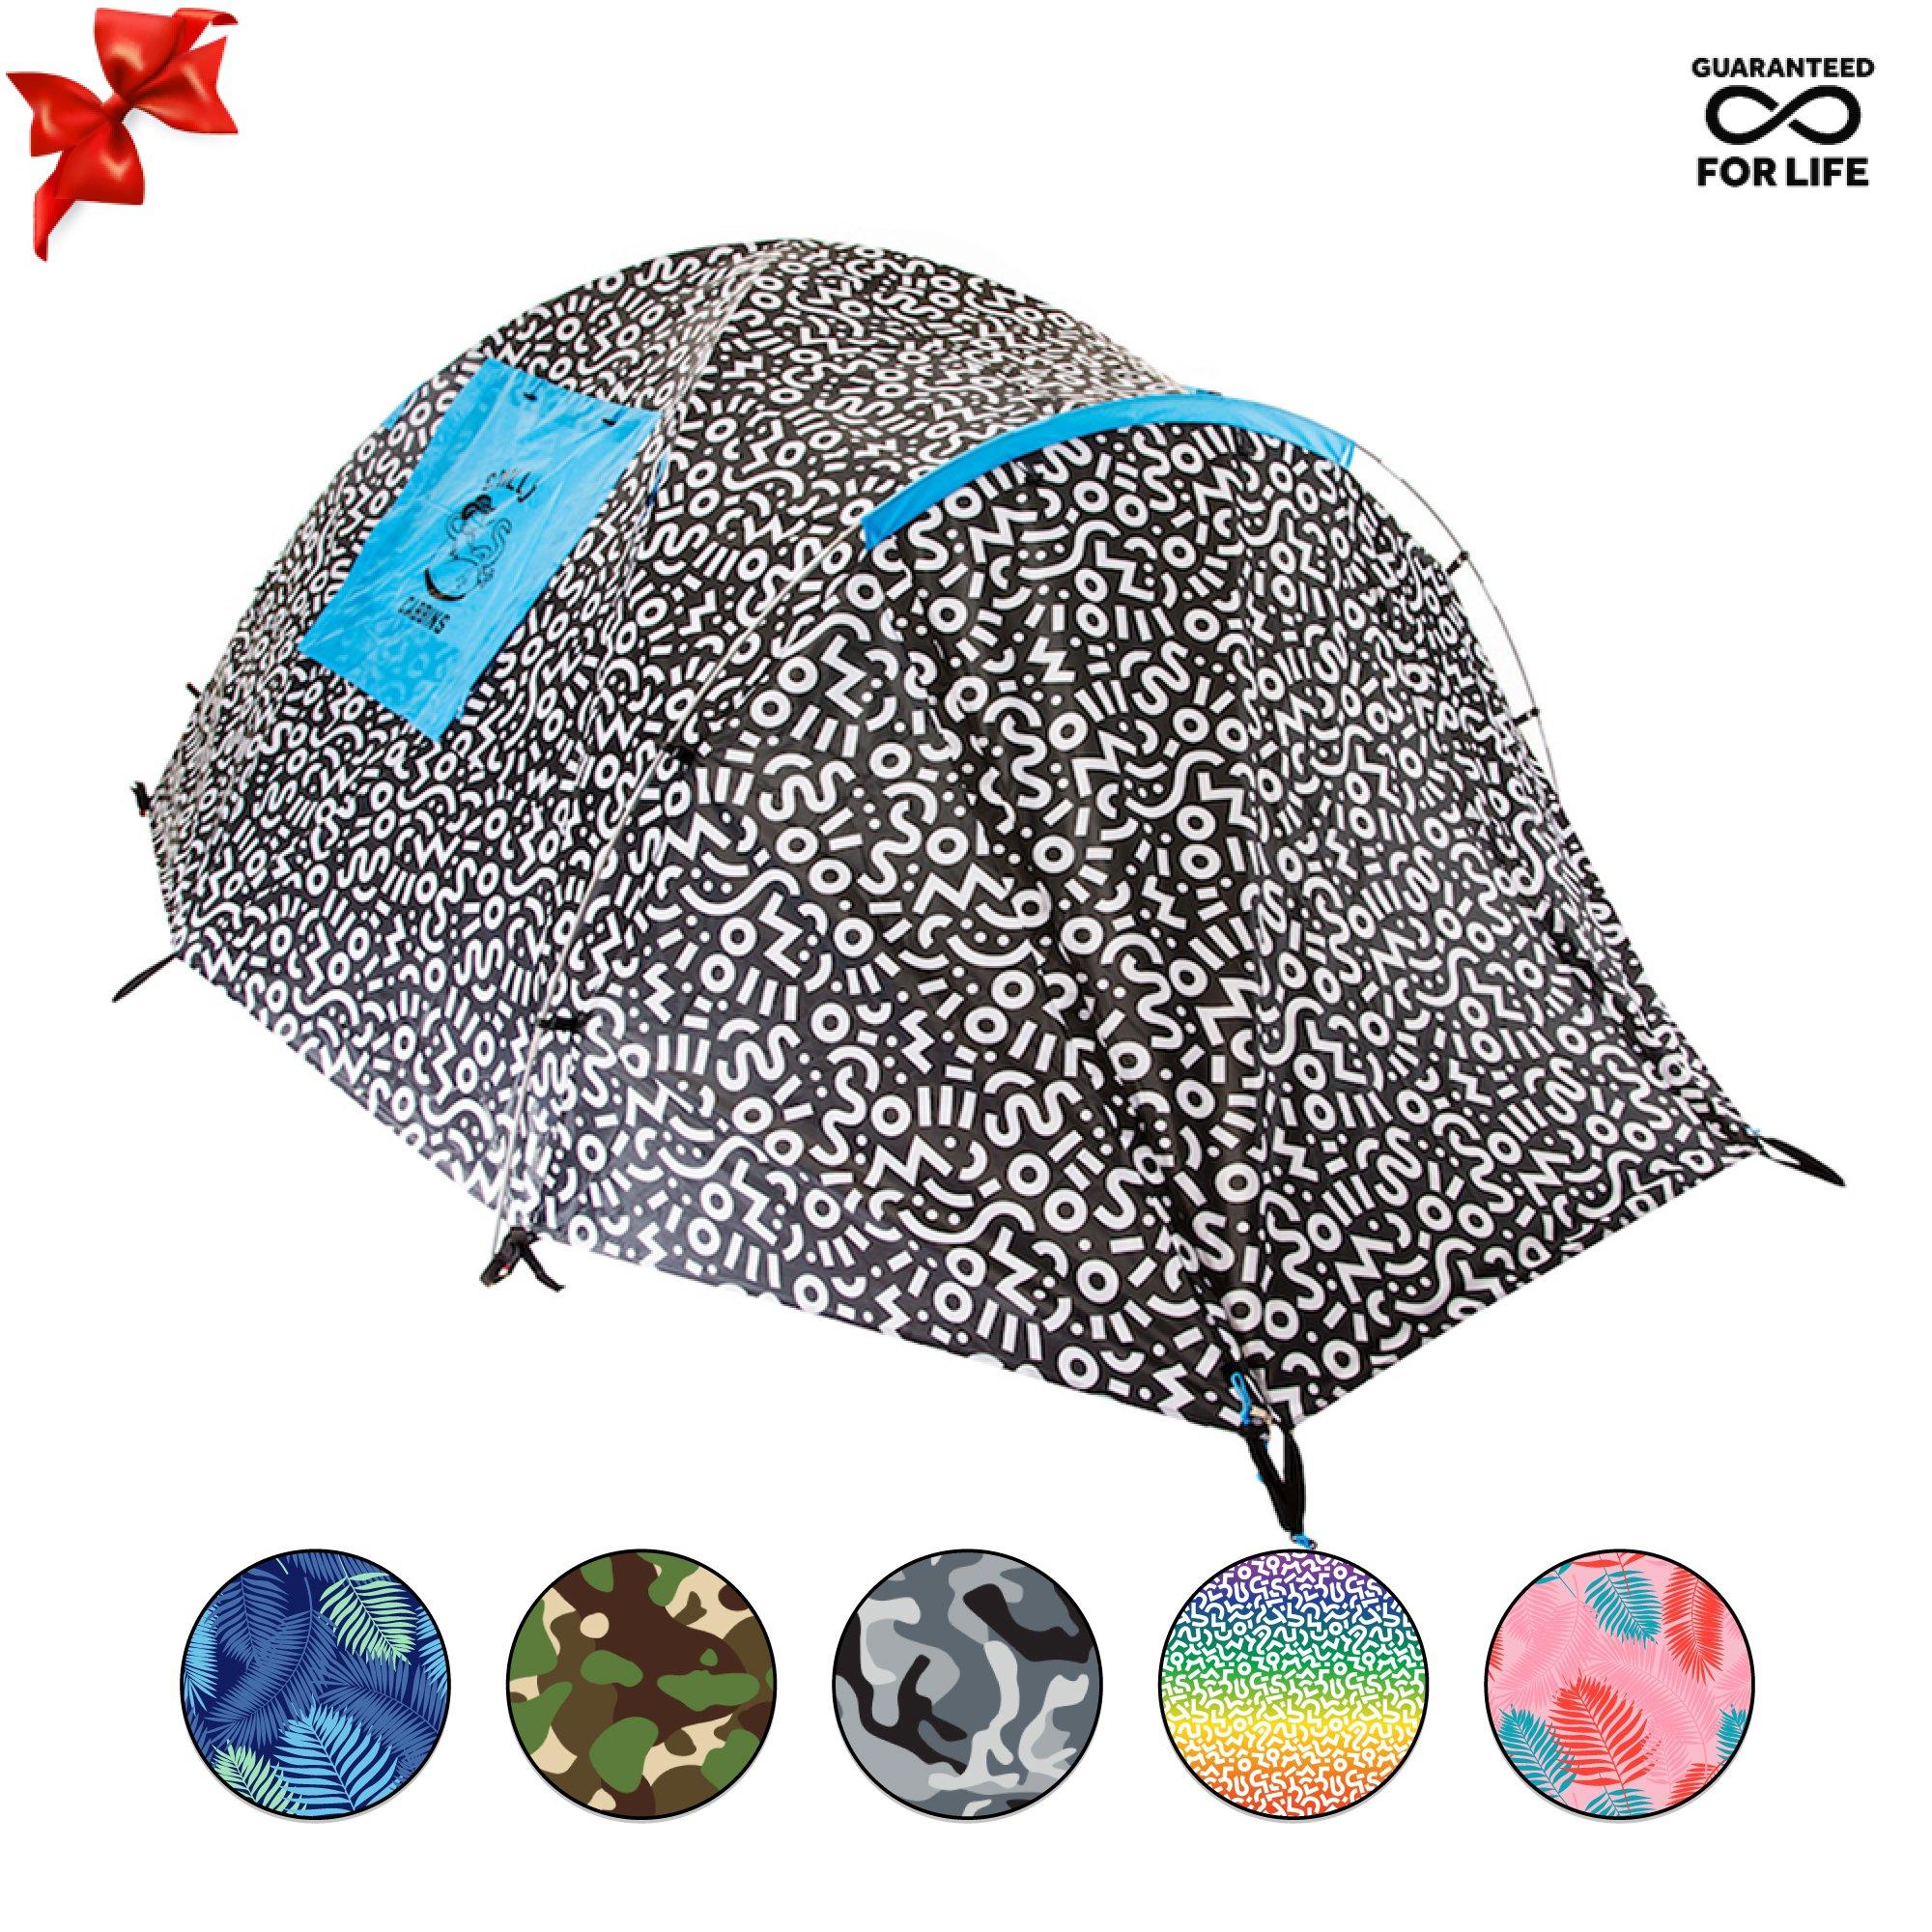 Galleon - Chillbo Cabbins 2 Person Tent With Cool Patterns Ultimate C&ing Gear For Backpacking Car C&ing Music Festivals Family C&ing Tents For ...  sc 1 st  Galleon & Galleon - Chillbo Cabbins 2 Person Tent With Cool Patterns Ultimate ...